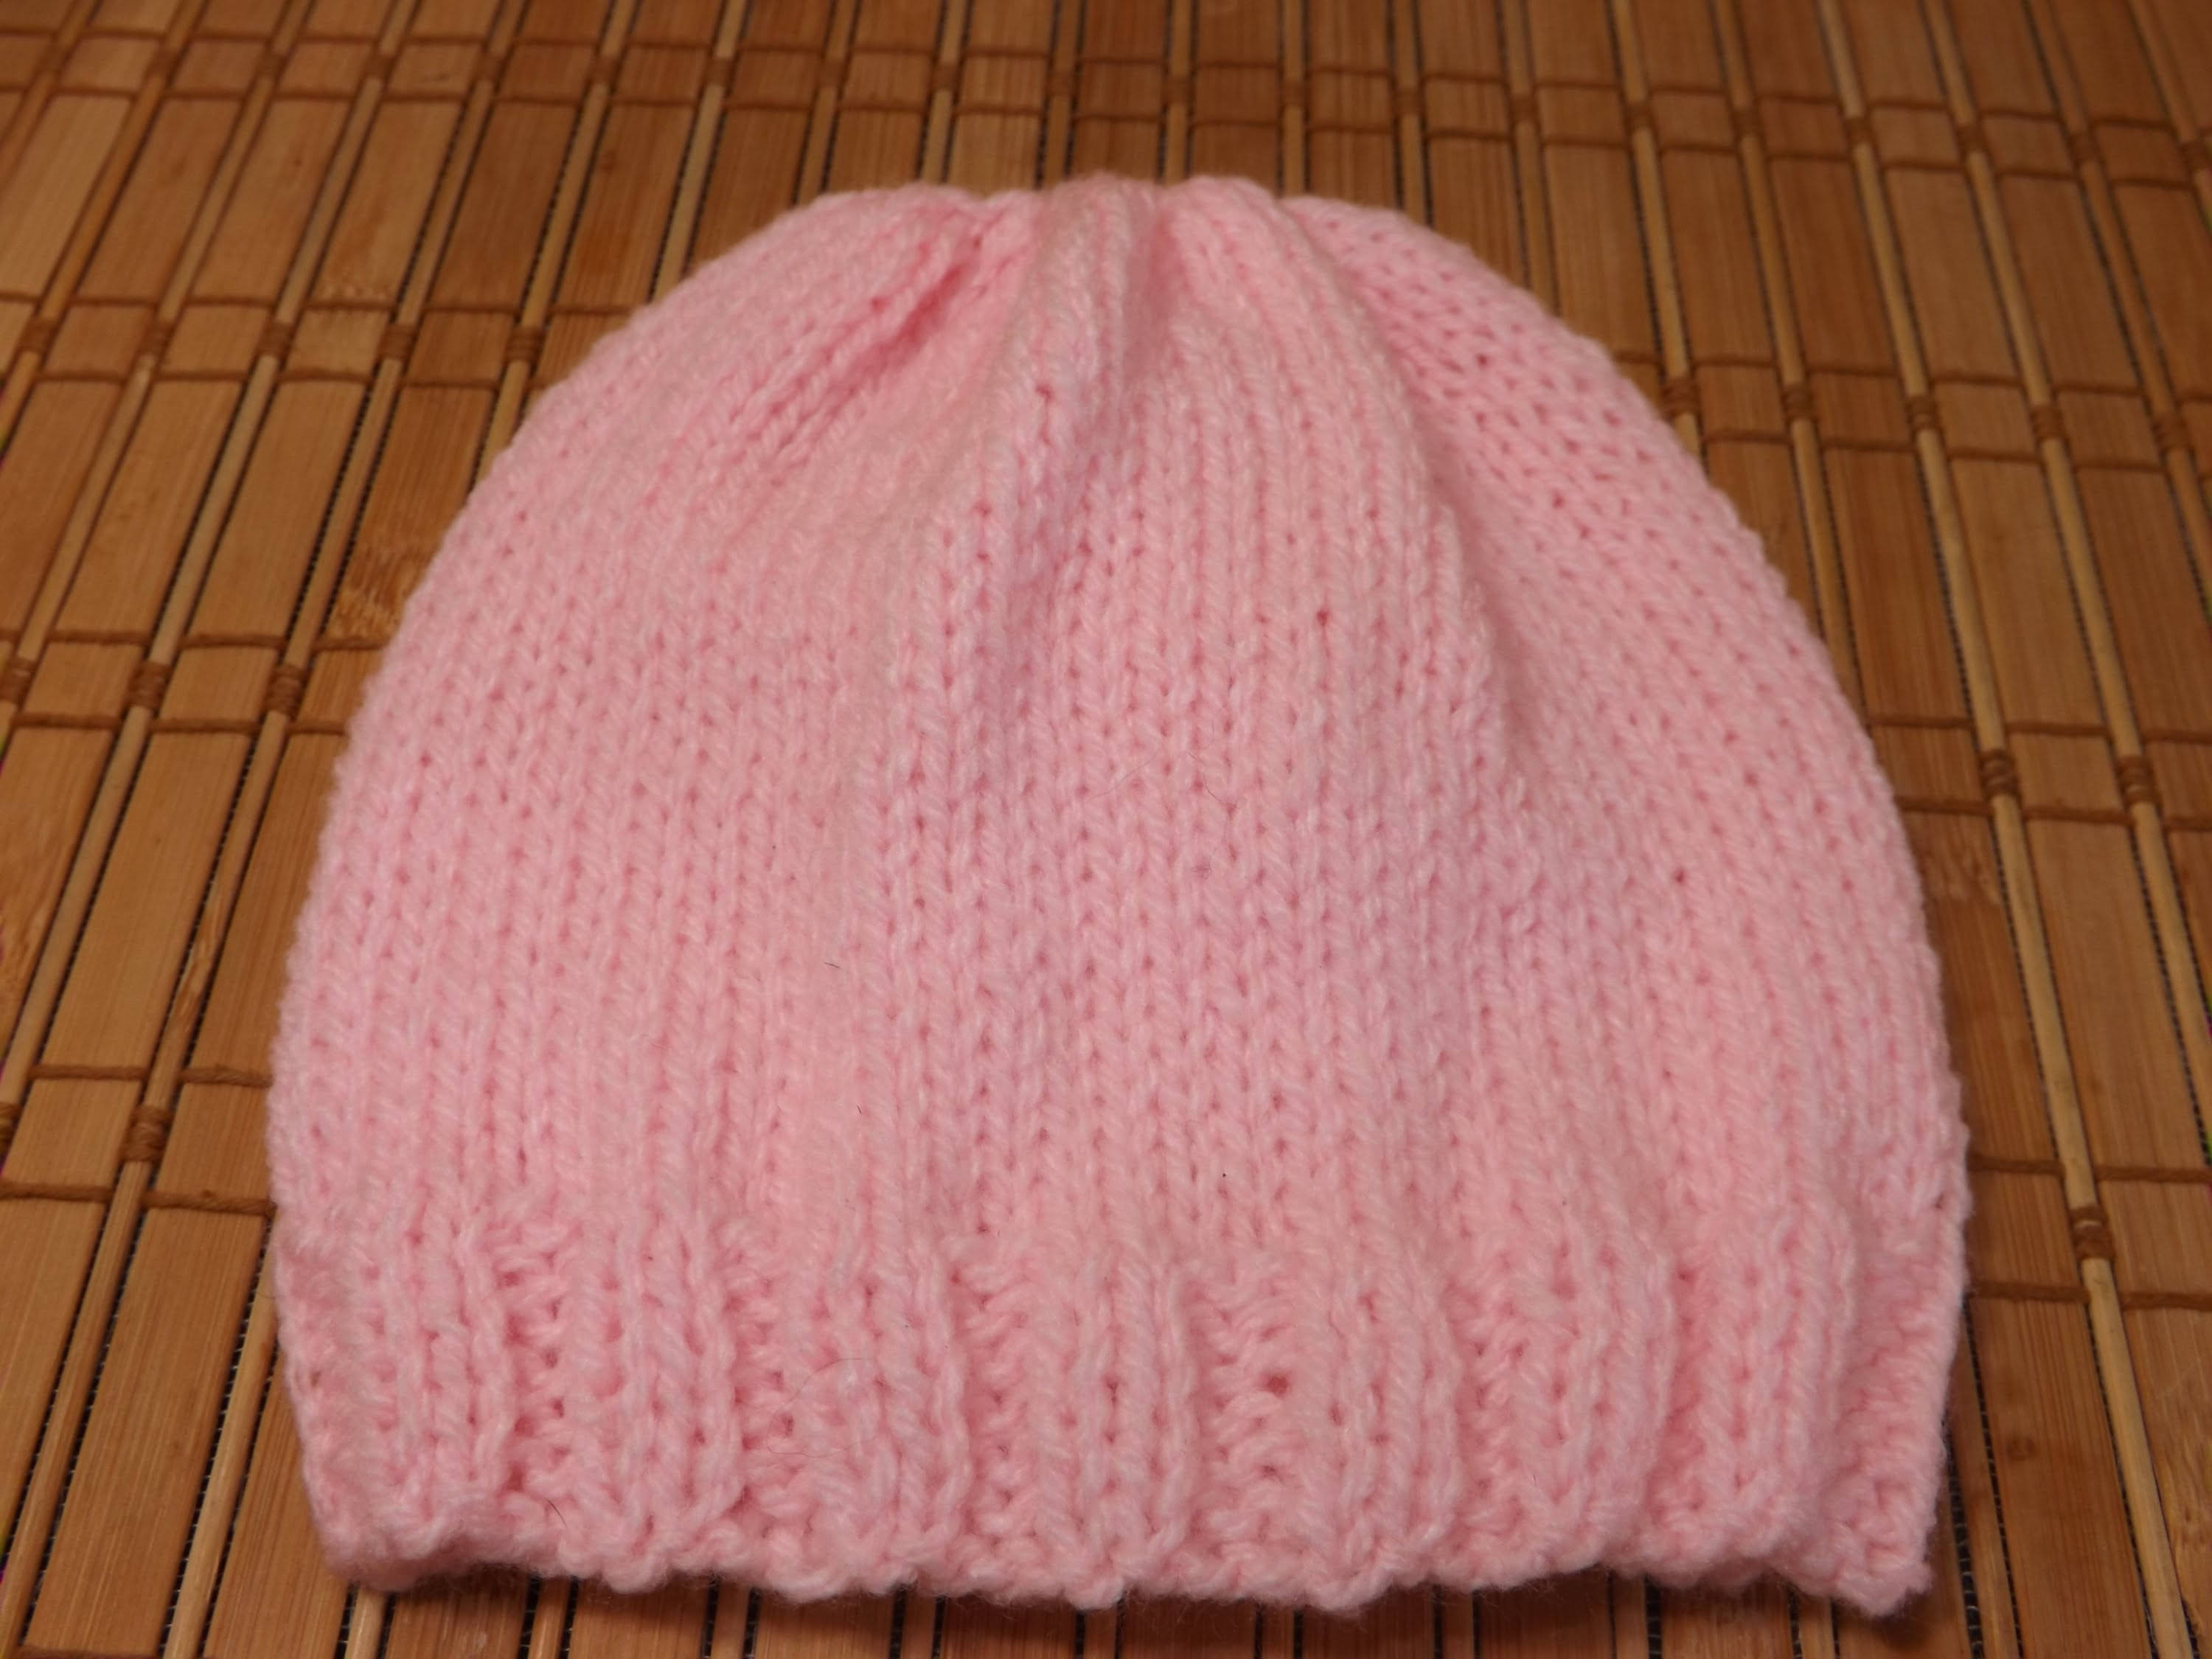 Best Of Free Easy Knitting Patterns for Beginners Hats Newborn Knit Hat Of Perfect 50 Images Newborn Knit Hat